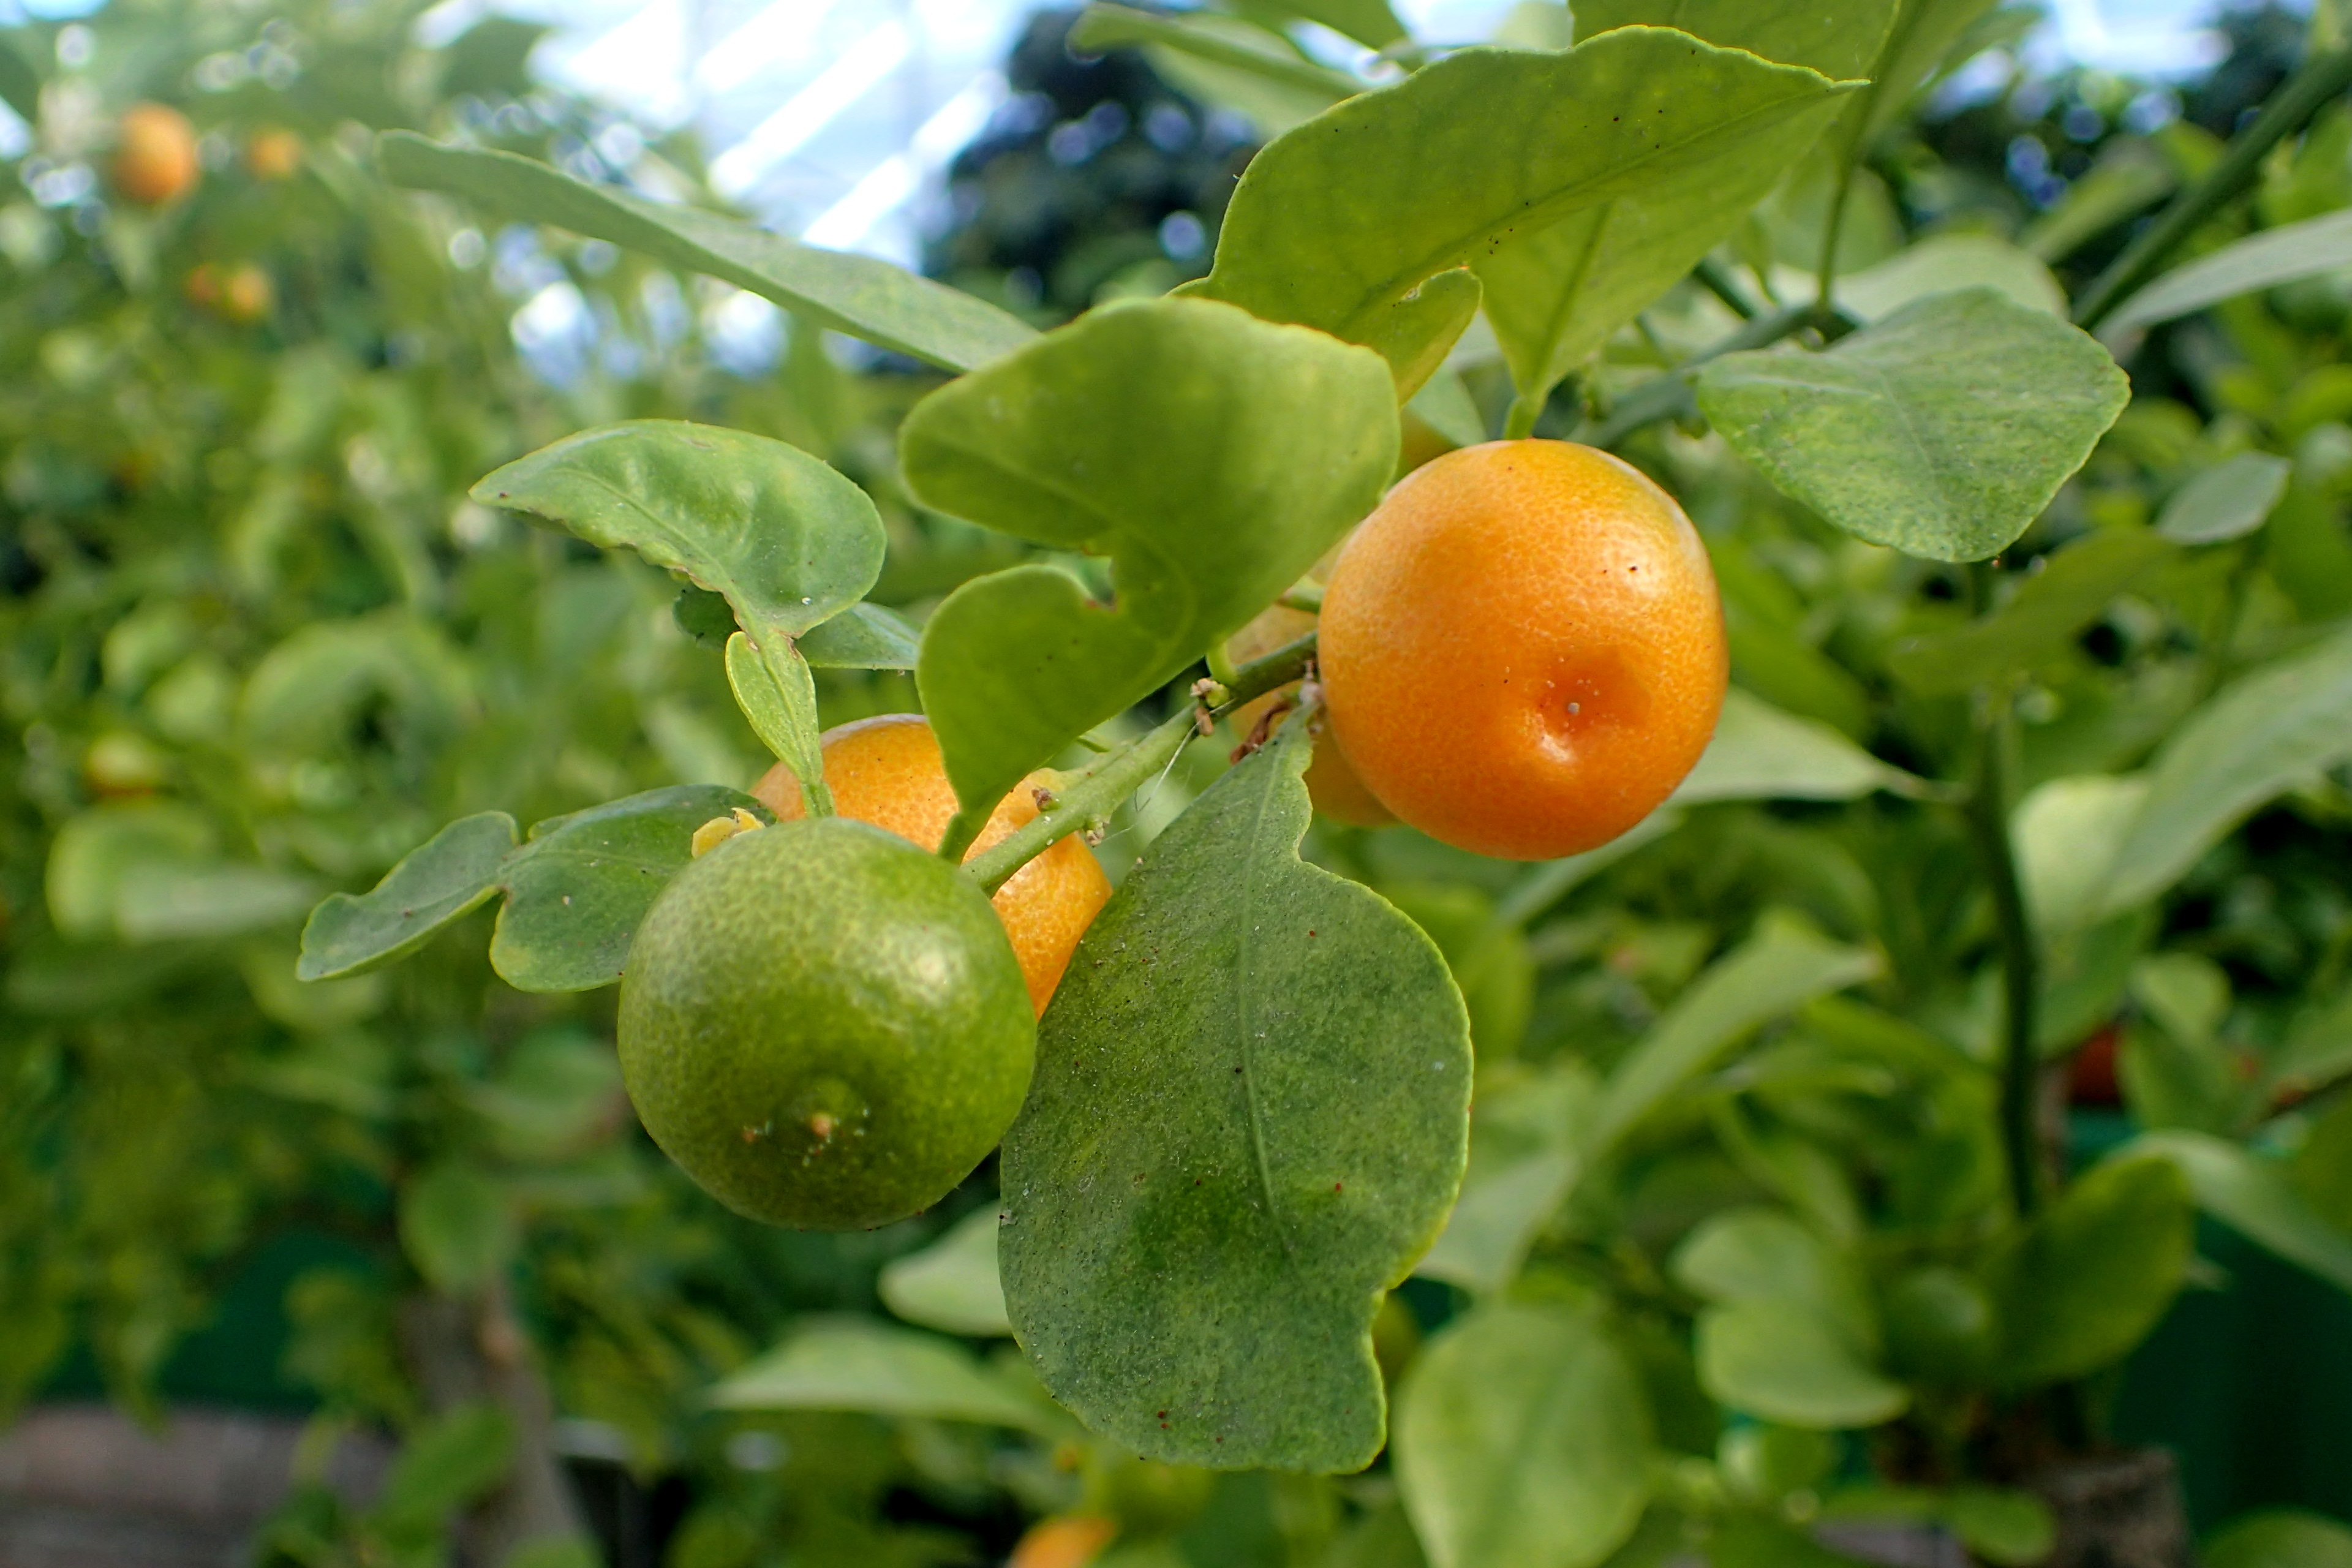 How many years before an orange tree produces